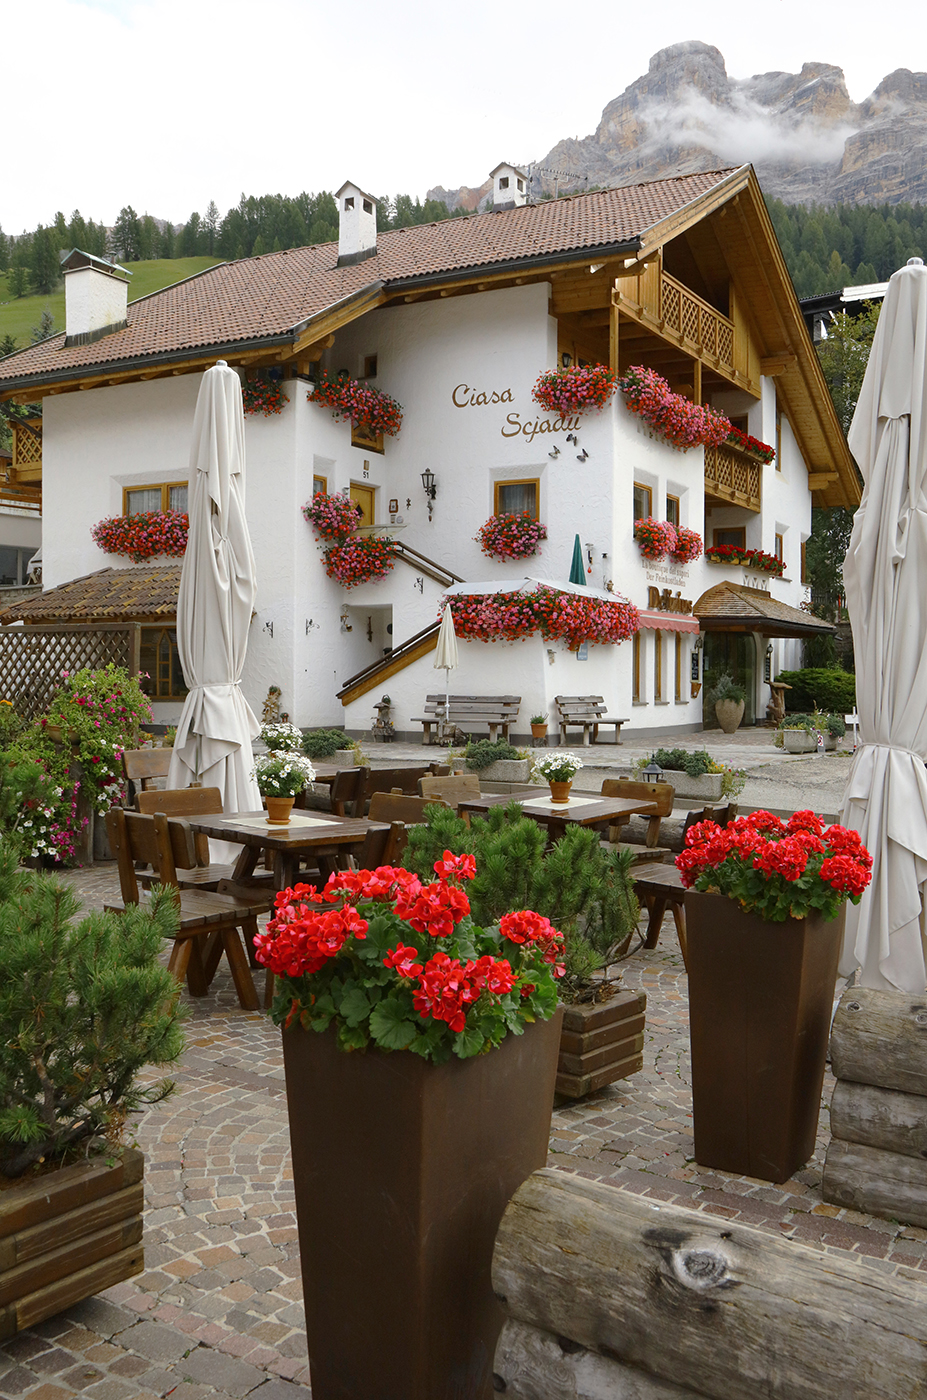 The Flowers of San Cassiano